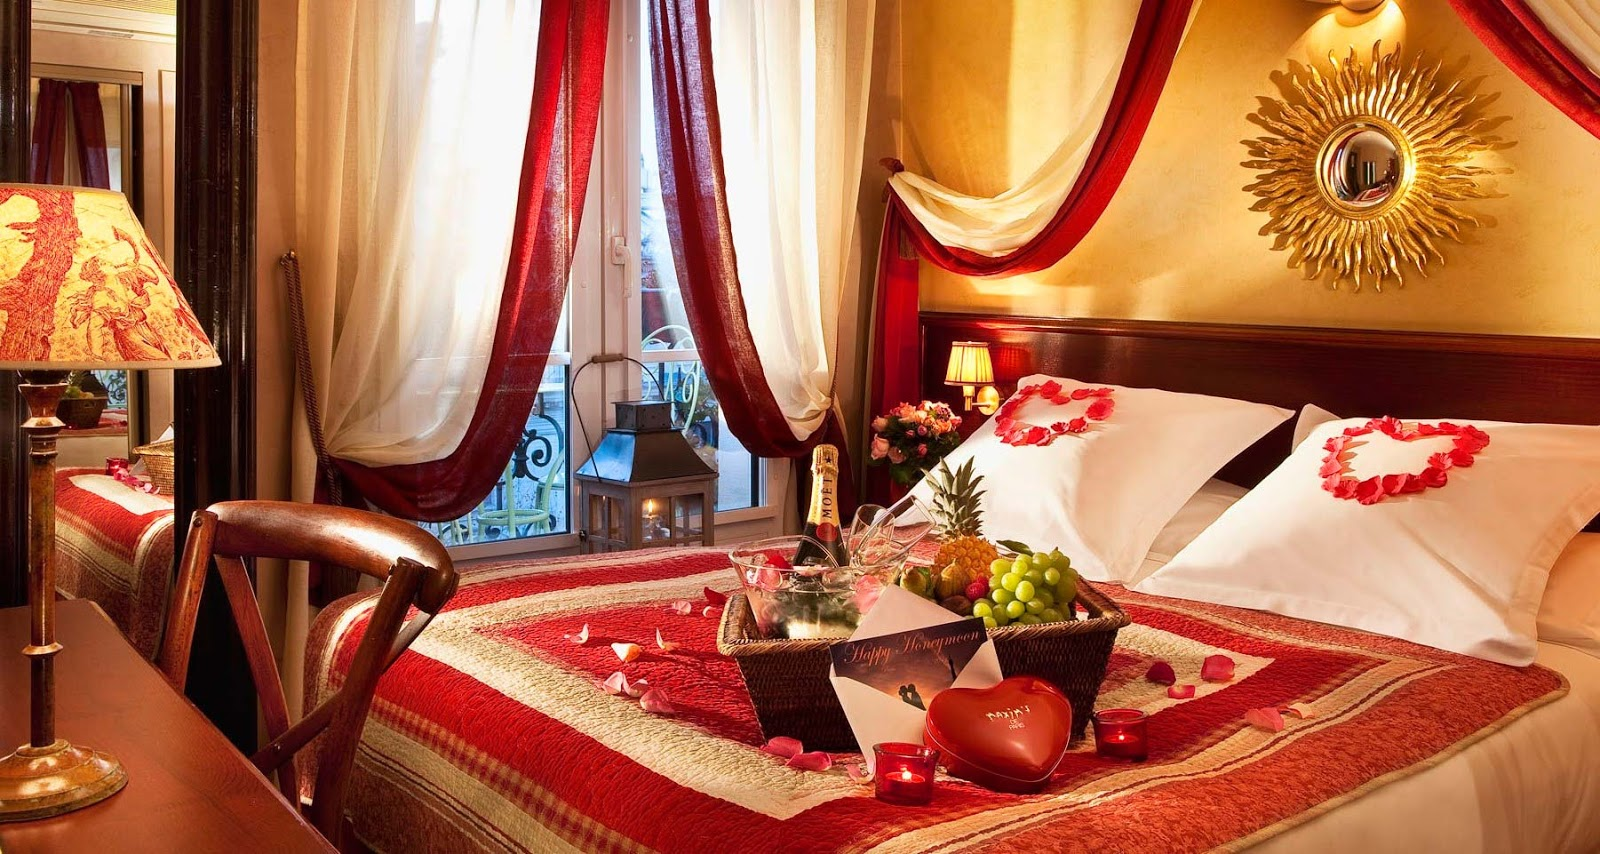 s day decorations ideas 2013 to decorate bedroom